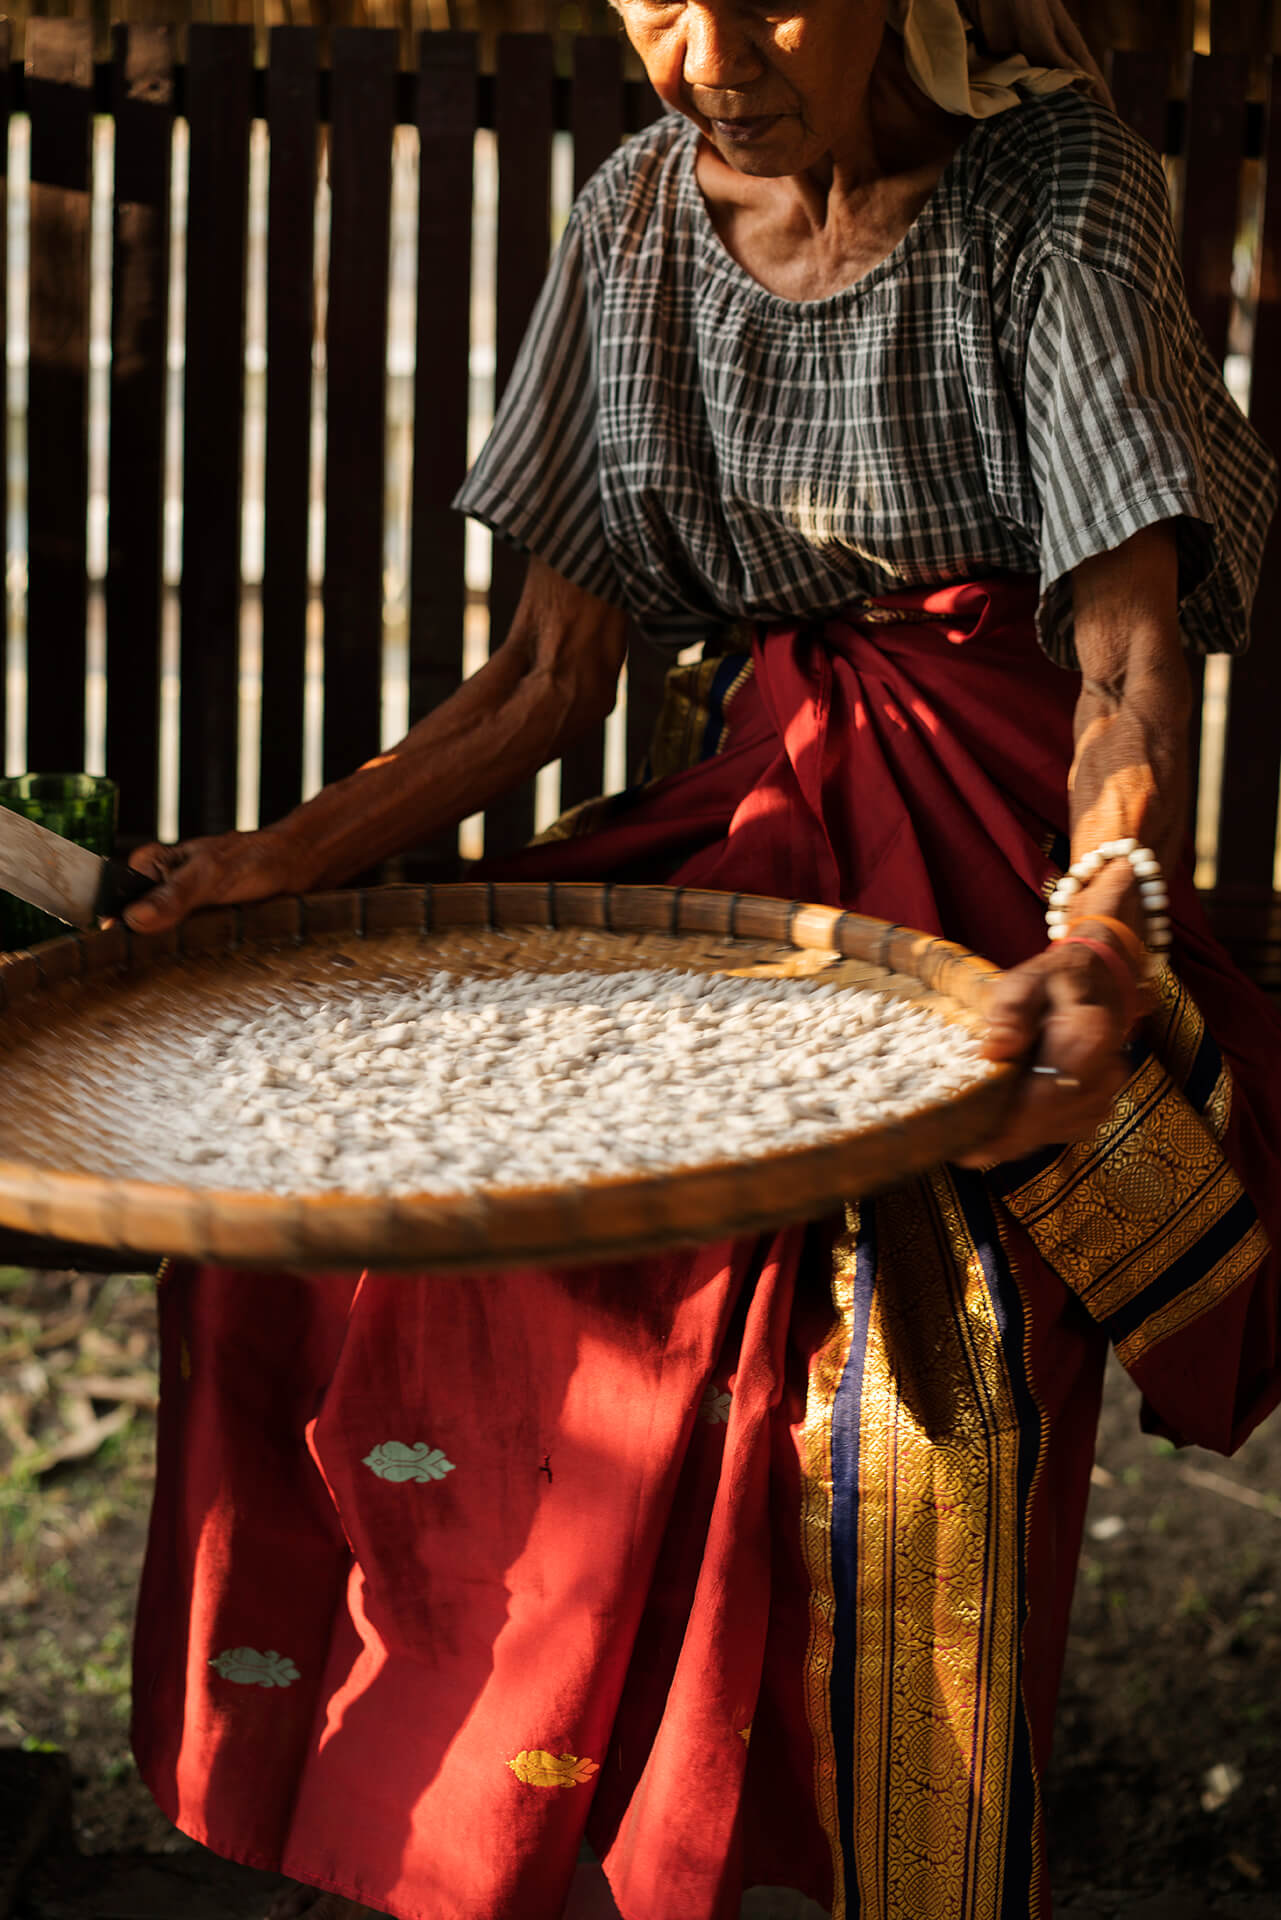 A woman sorts grains on a bilao in Maguindanao, photo by Sonny Thakur